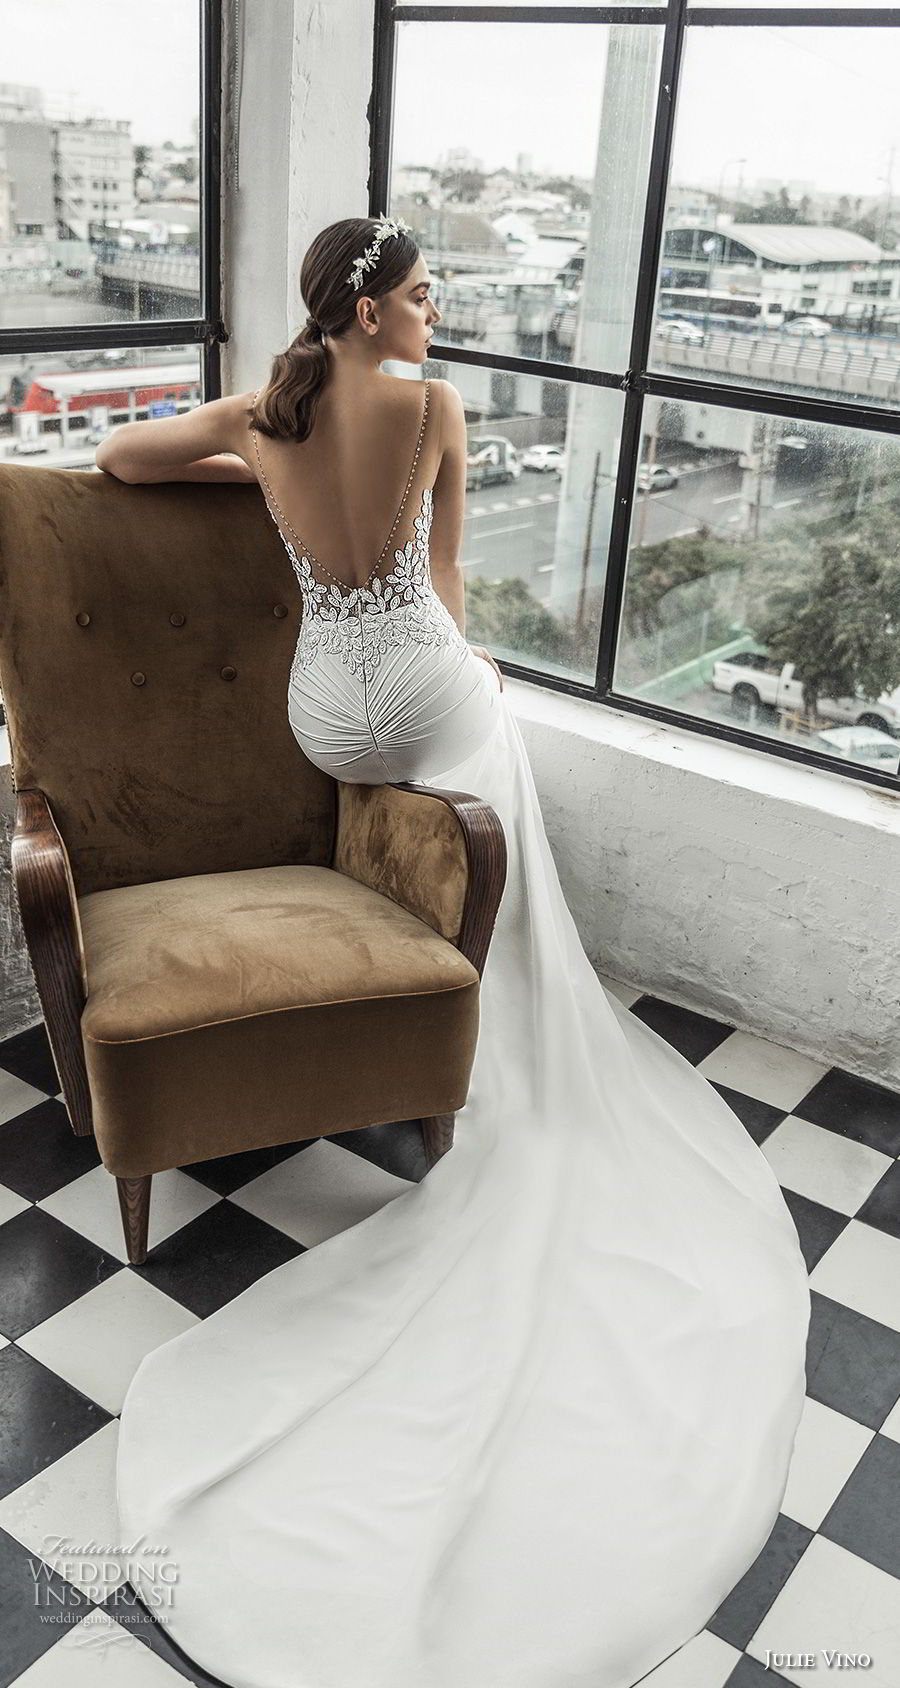 julie vino 2019 romanzo bridal sleeveless v neck heavily embellished bodice romantic elegant fit and flare wedding dress low scoop back chapel train (3) bv